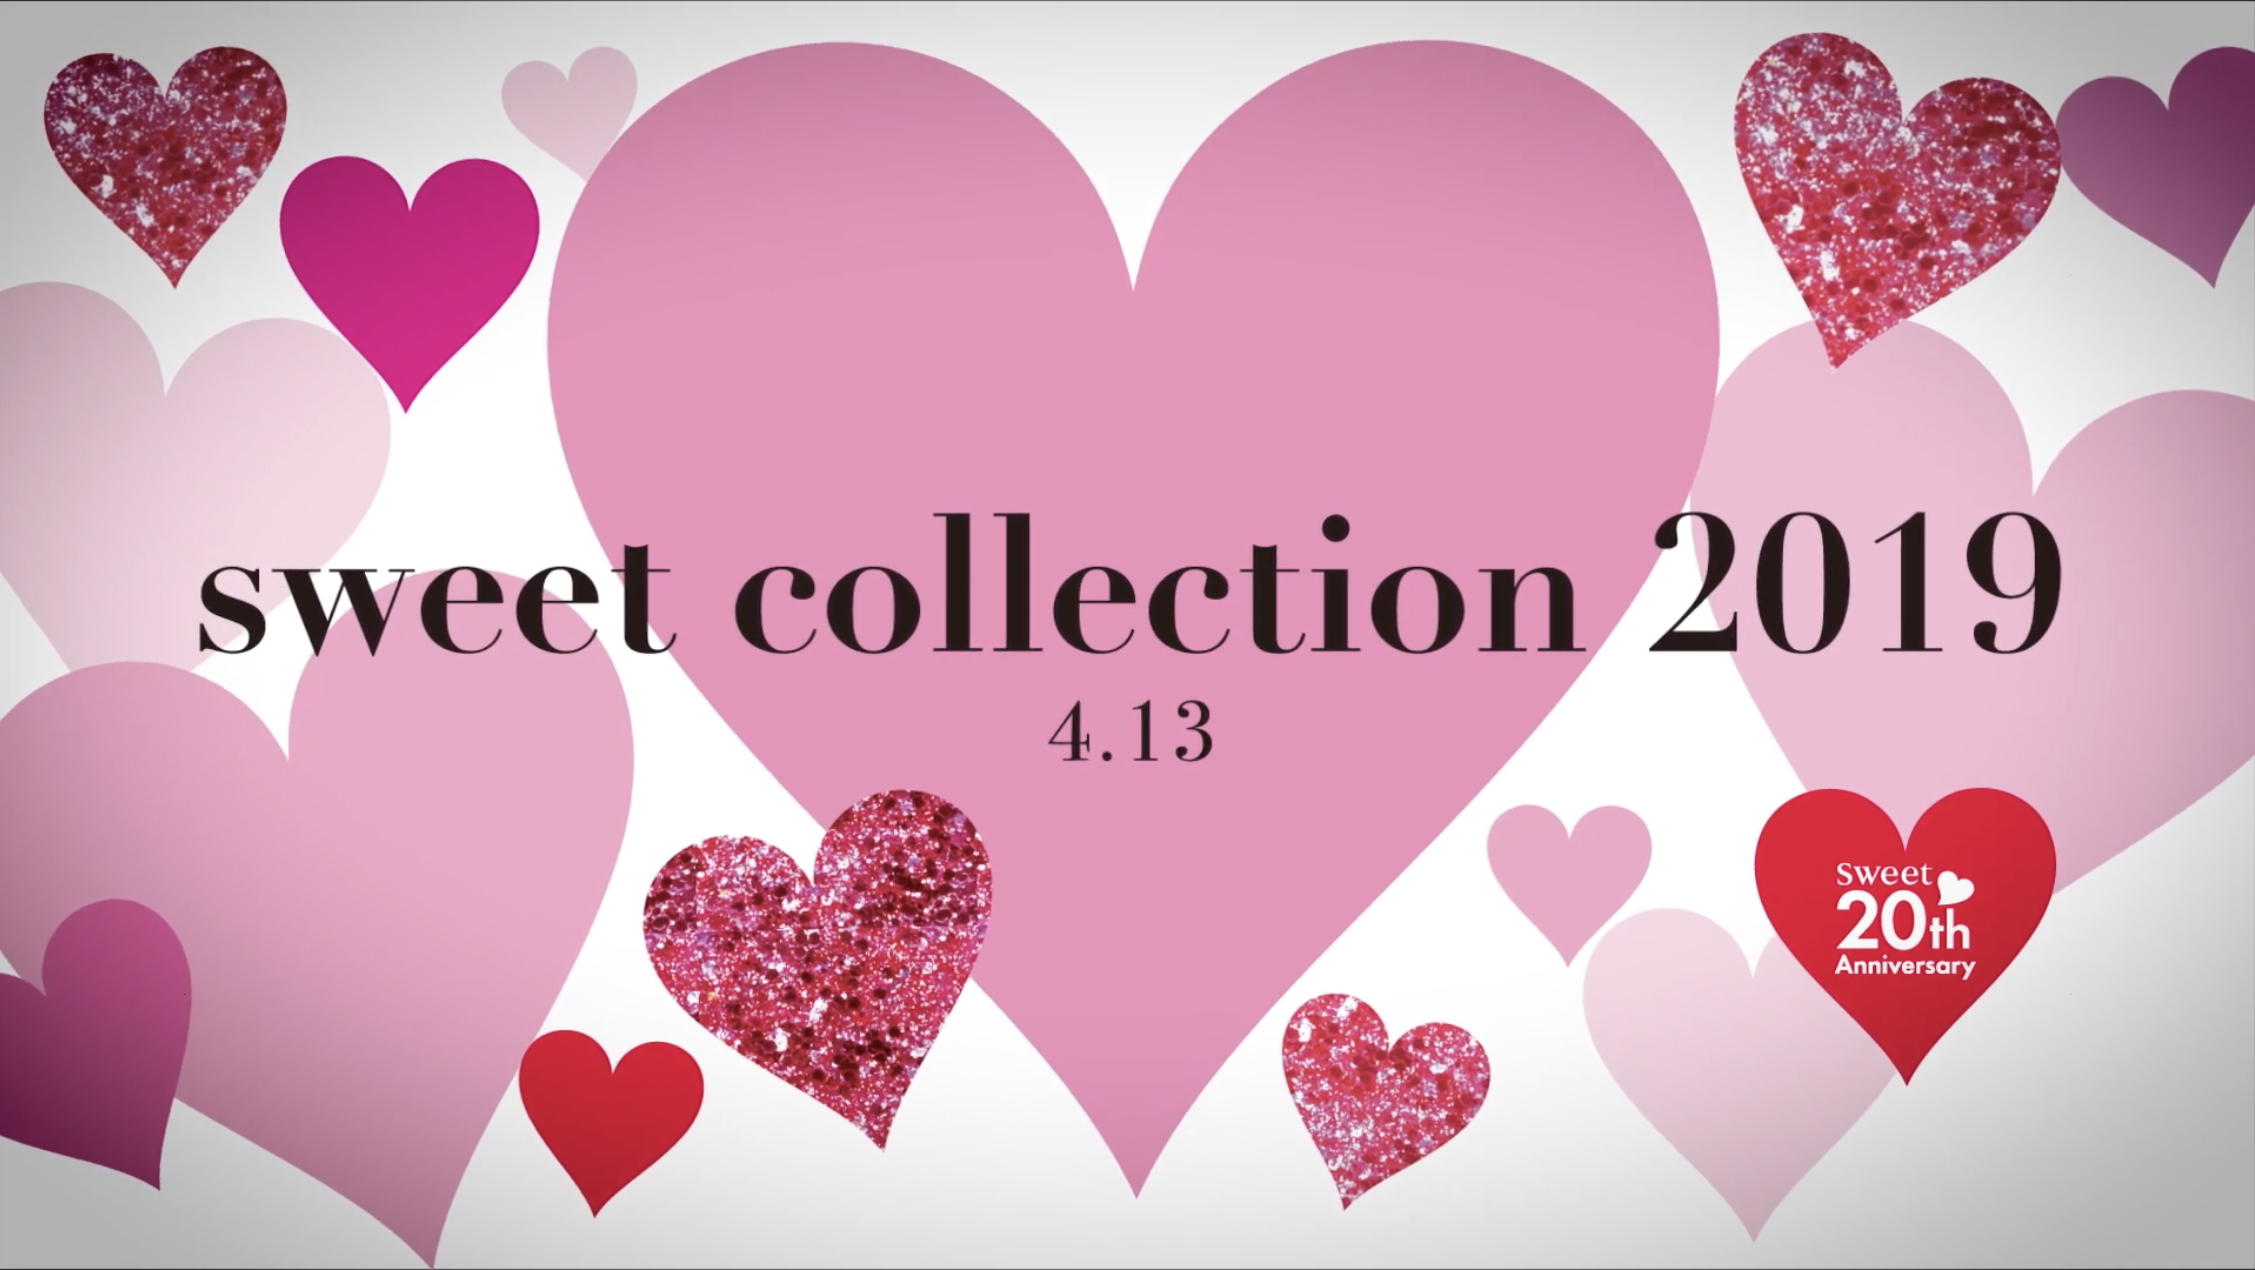 【sweetcollection2019】出展の動画をアップしました!